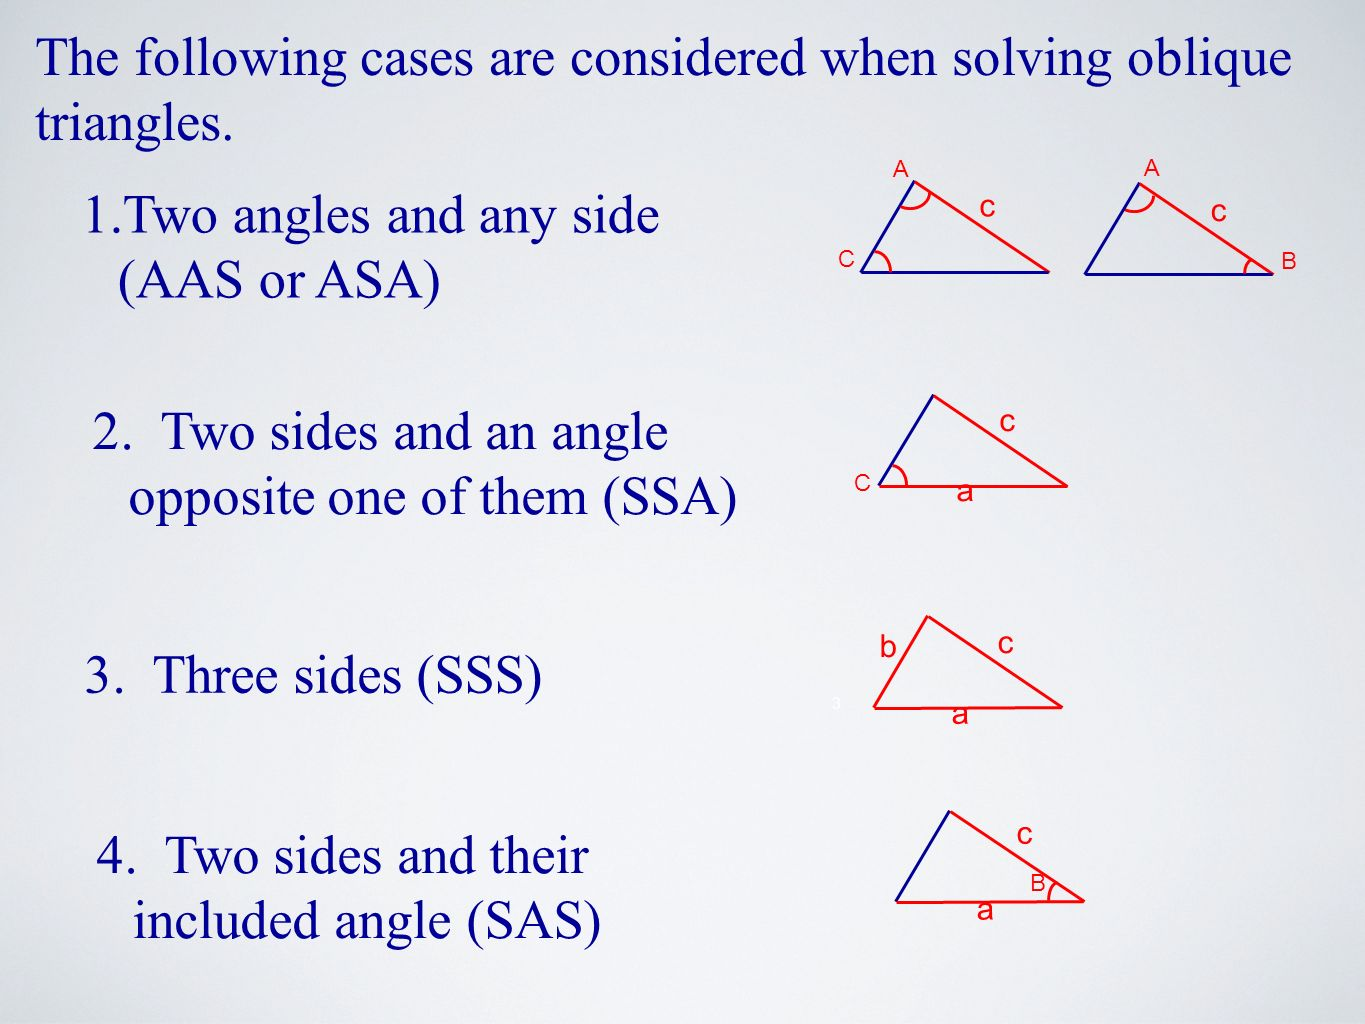 3 The following cases are considered when solving oblique triangles. 1.Two angles and any side (AAS or ASA) 2. Two sides and an angle opposite one of